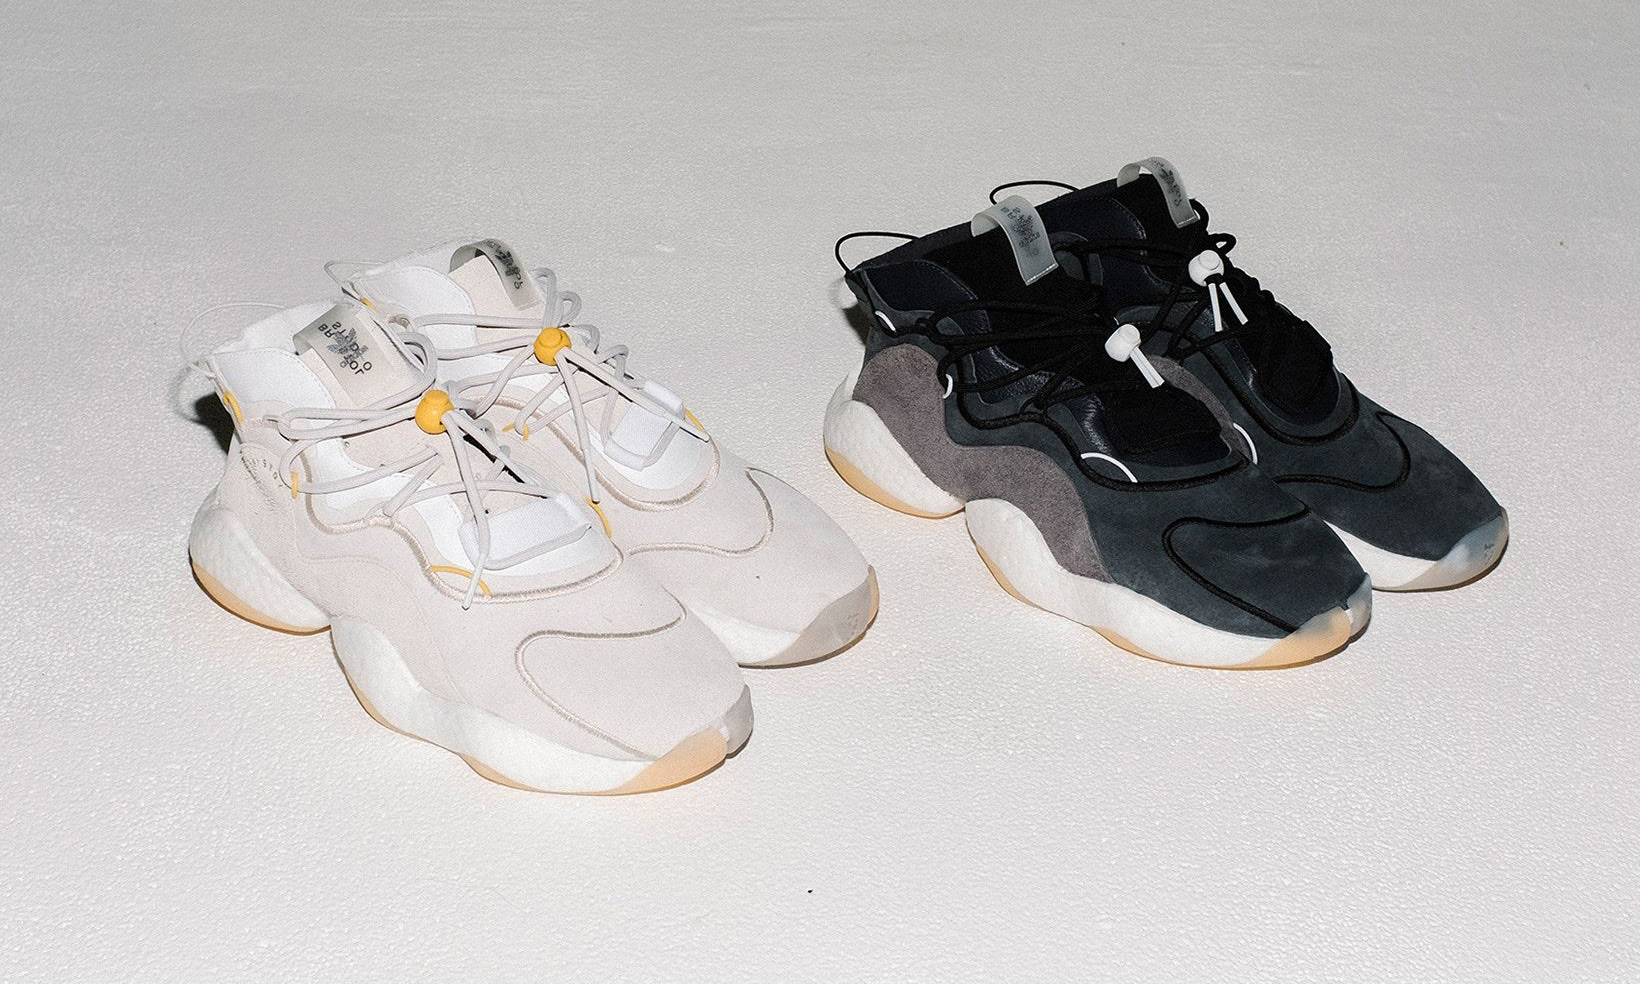 Bristol Studio x adidas Originals 联名 Crazy BYW 登场